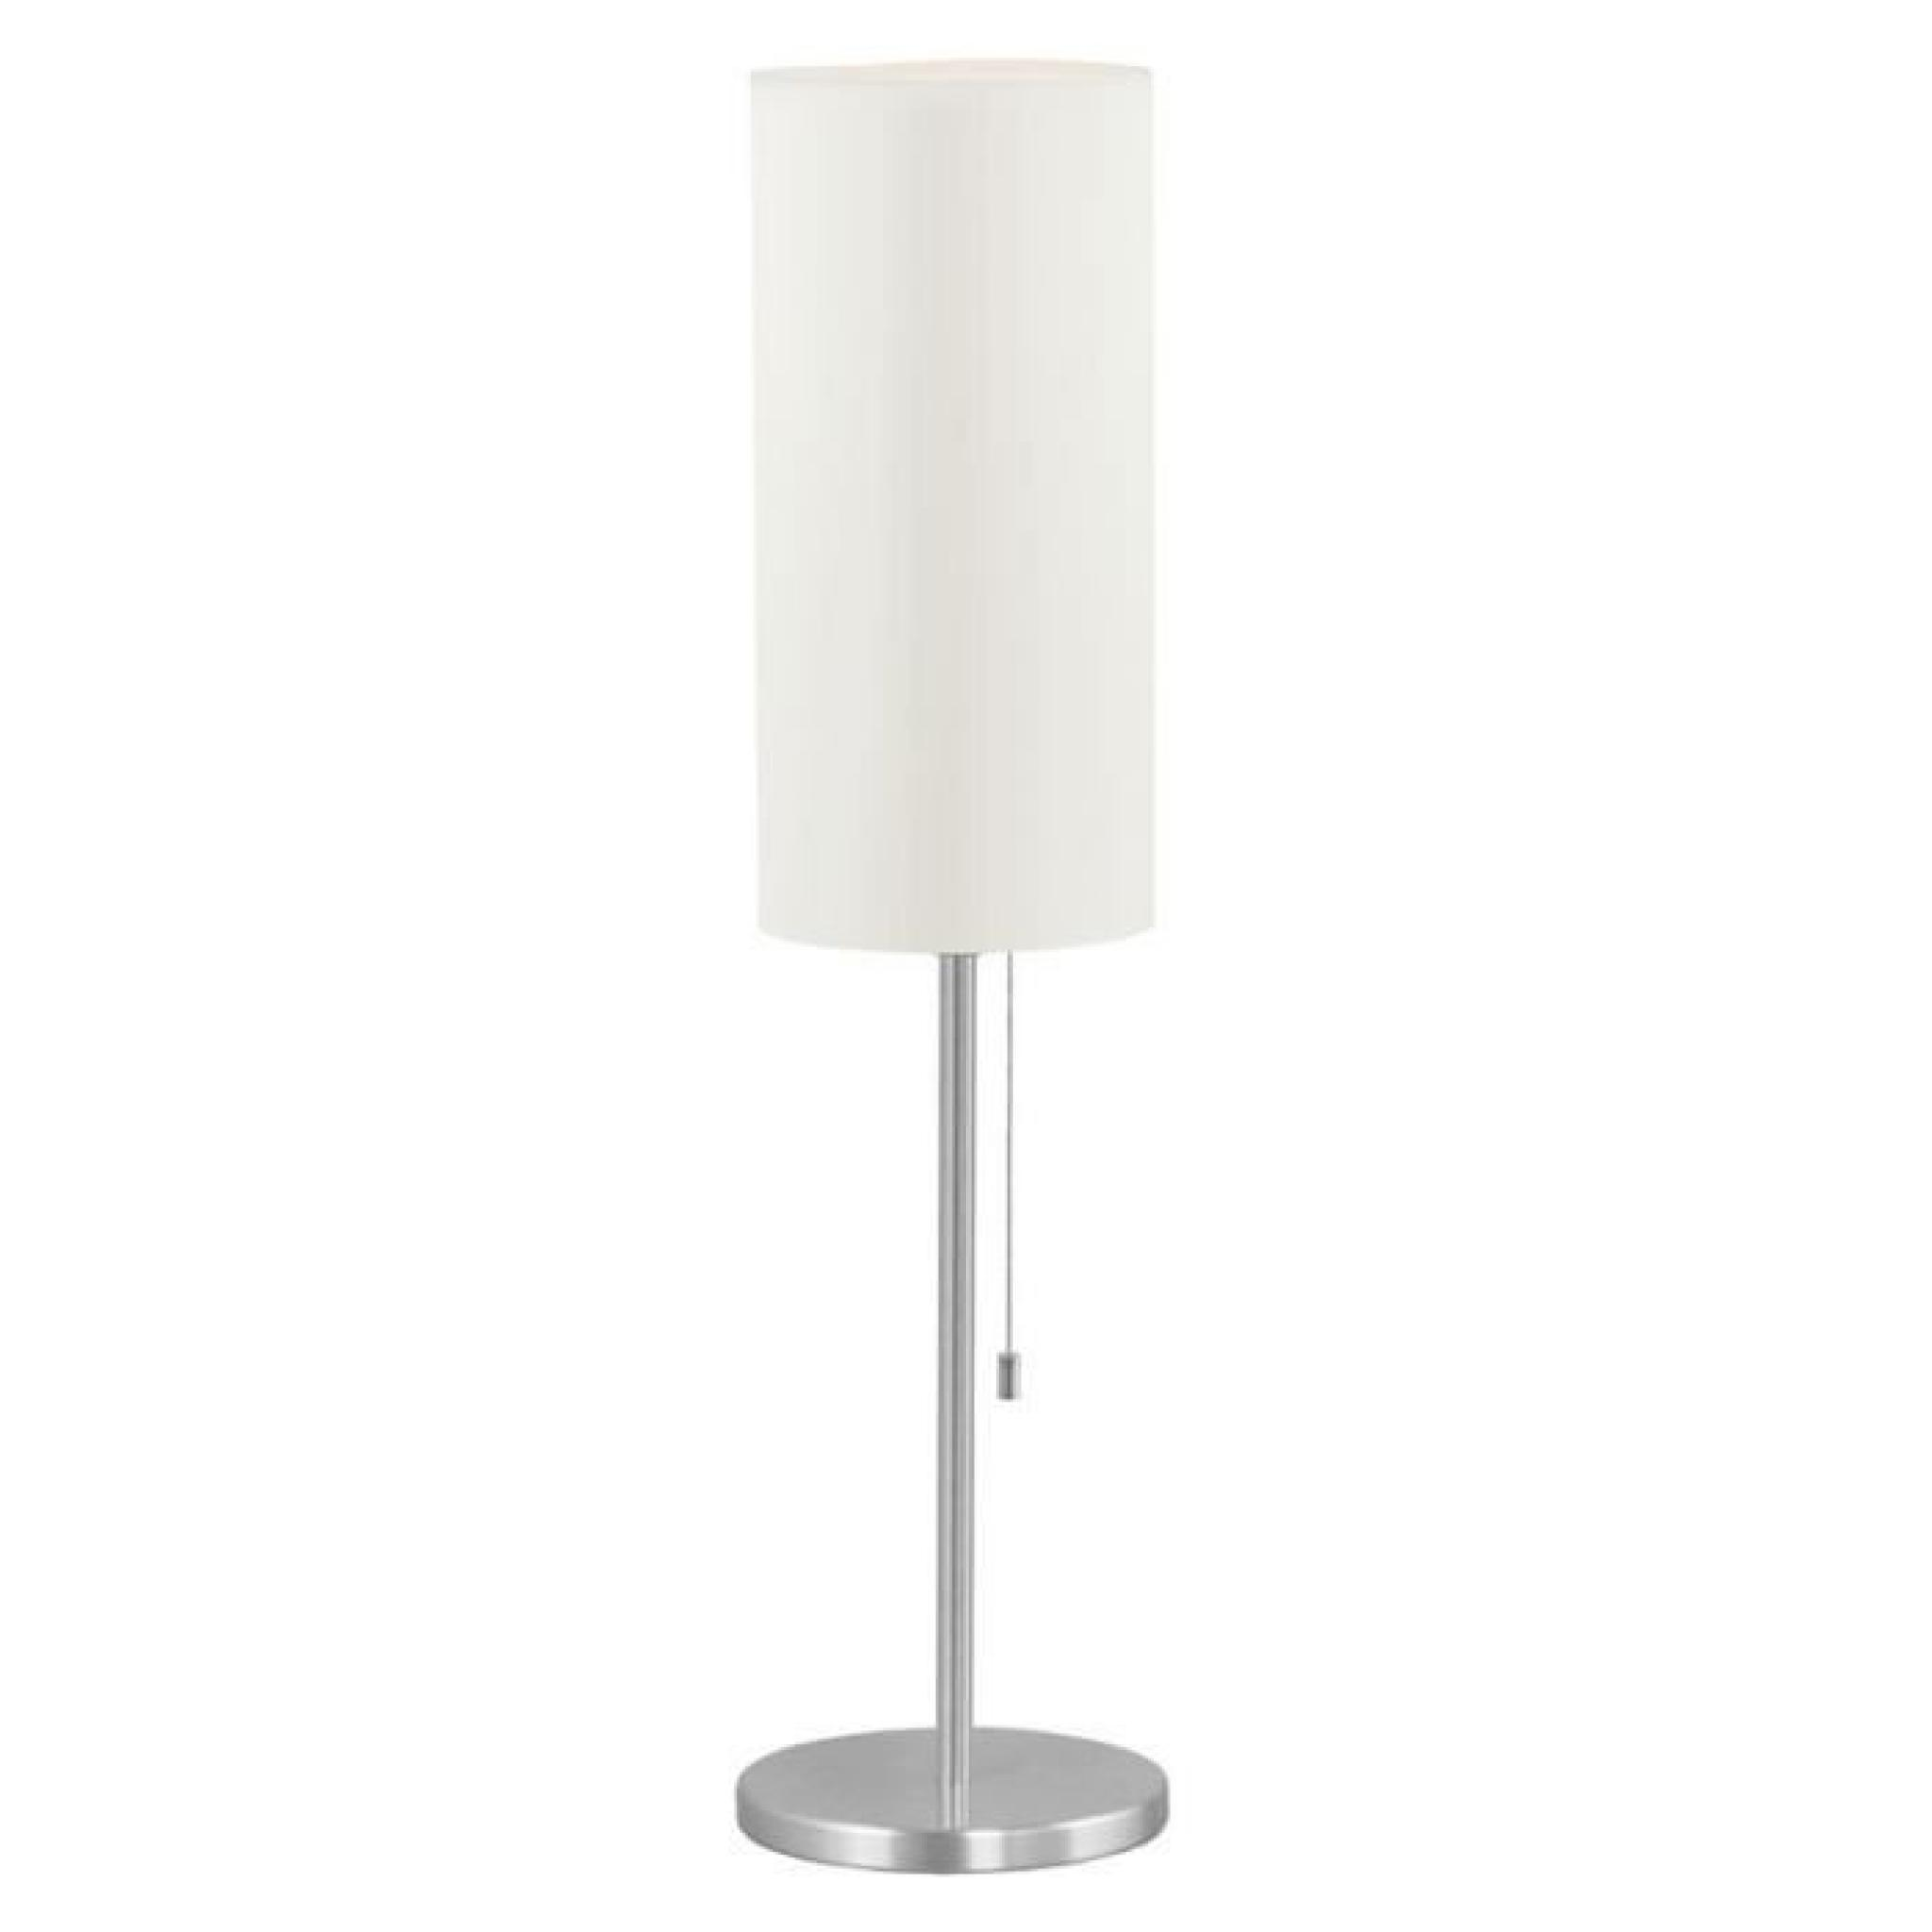 lampe a poser tube aluminium 1x60w eglo lighting achat vente lampe a poser pas cher. Black Bedroom Furniture Sets. Home Design Ideas